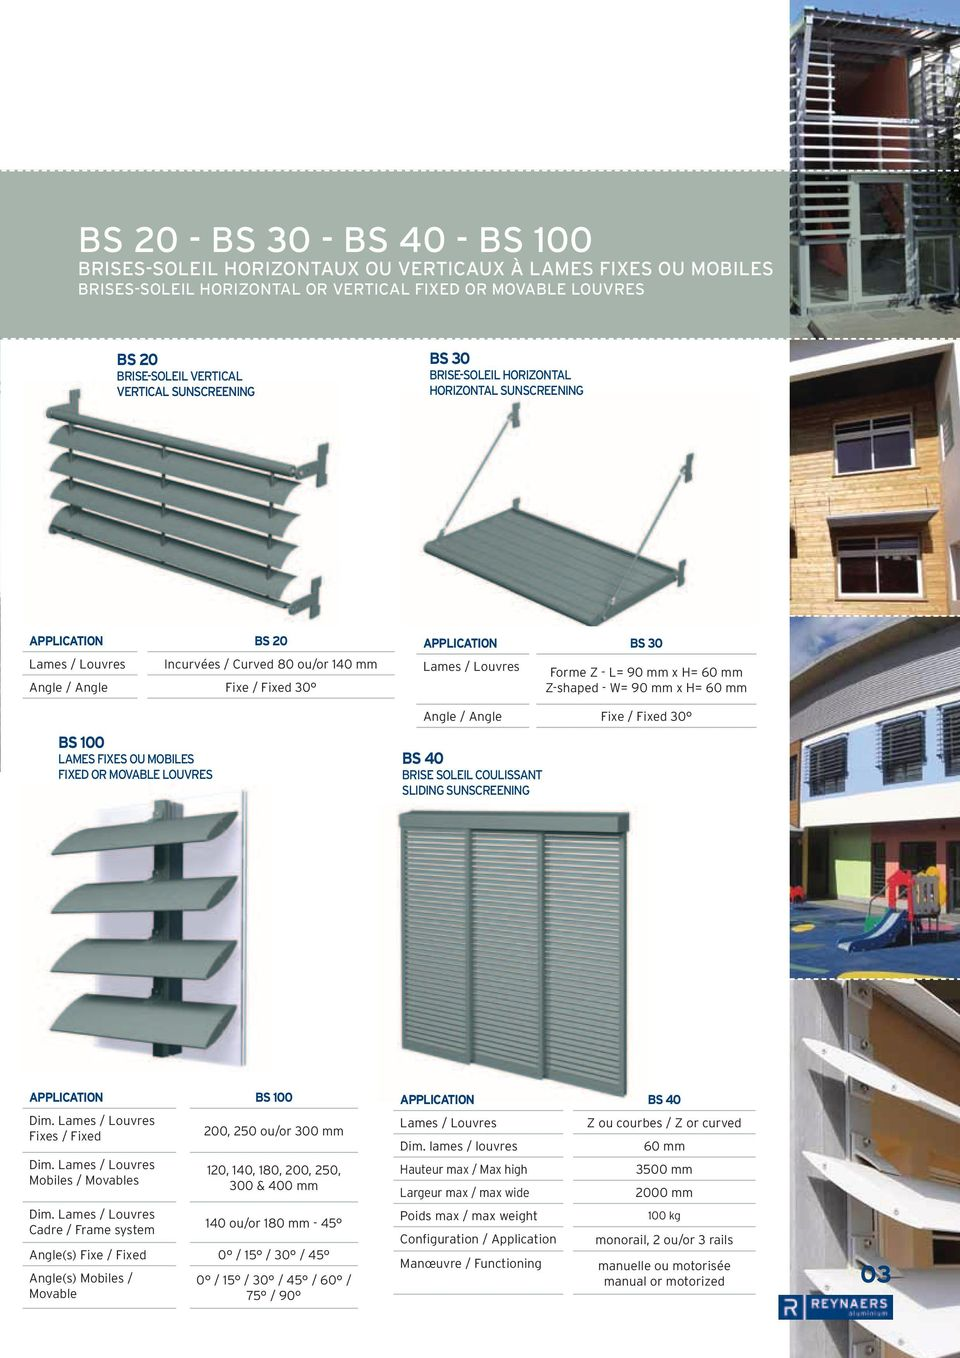 louvres Application BS 30 Forme Z - L= 90 mm x H= 60 mm Z-shaped - W= 90 mm x H= 60 mm Angle / Angle Fixe / Fixed 30 BS 40 brise soleil coulissant sliding sunscreening Application bs 100 Dim.